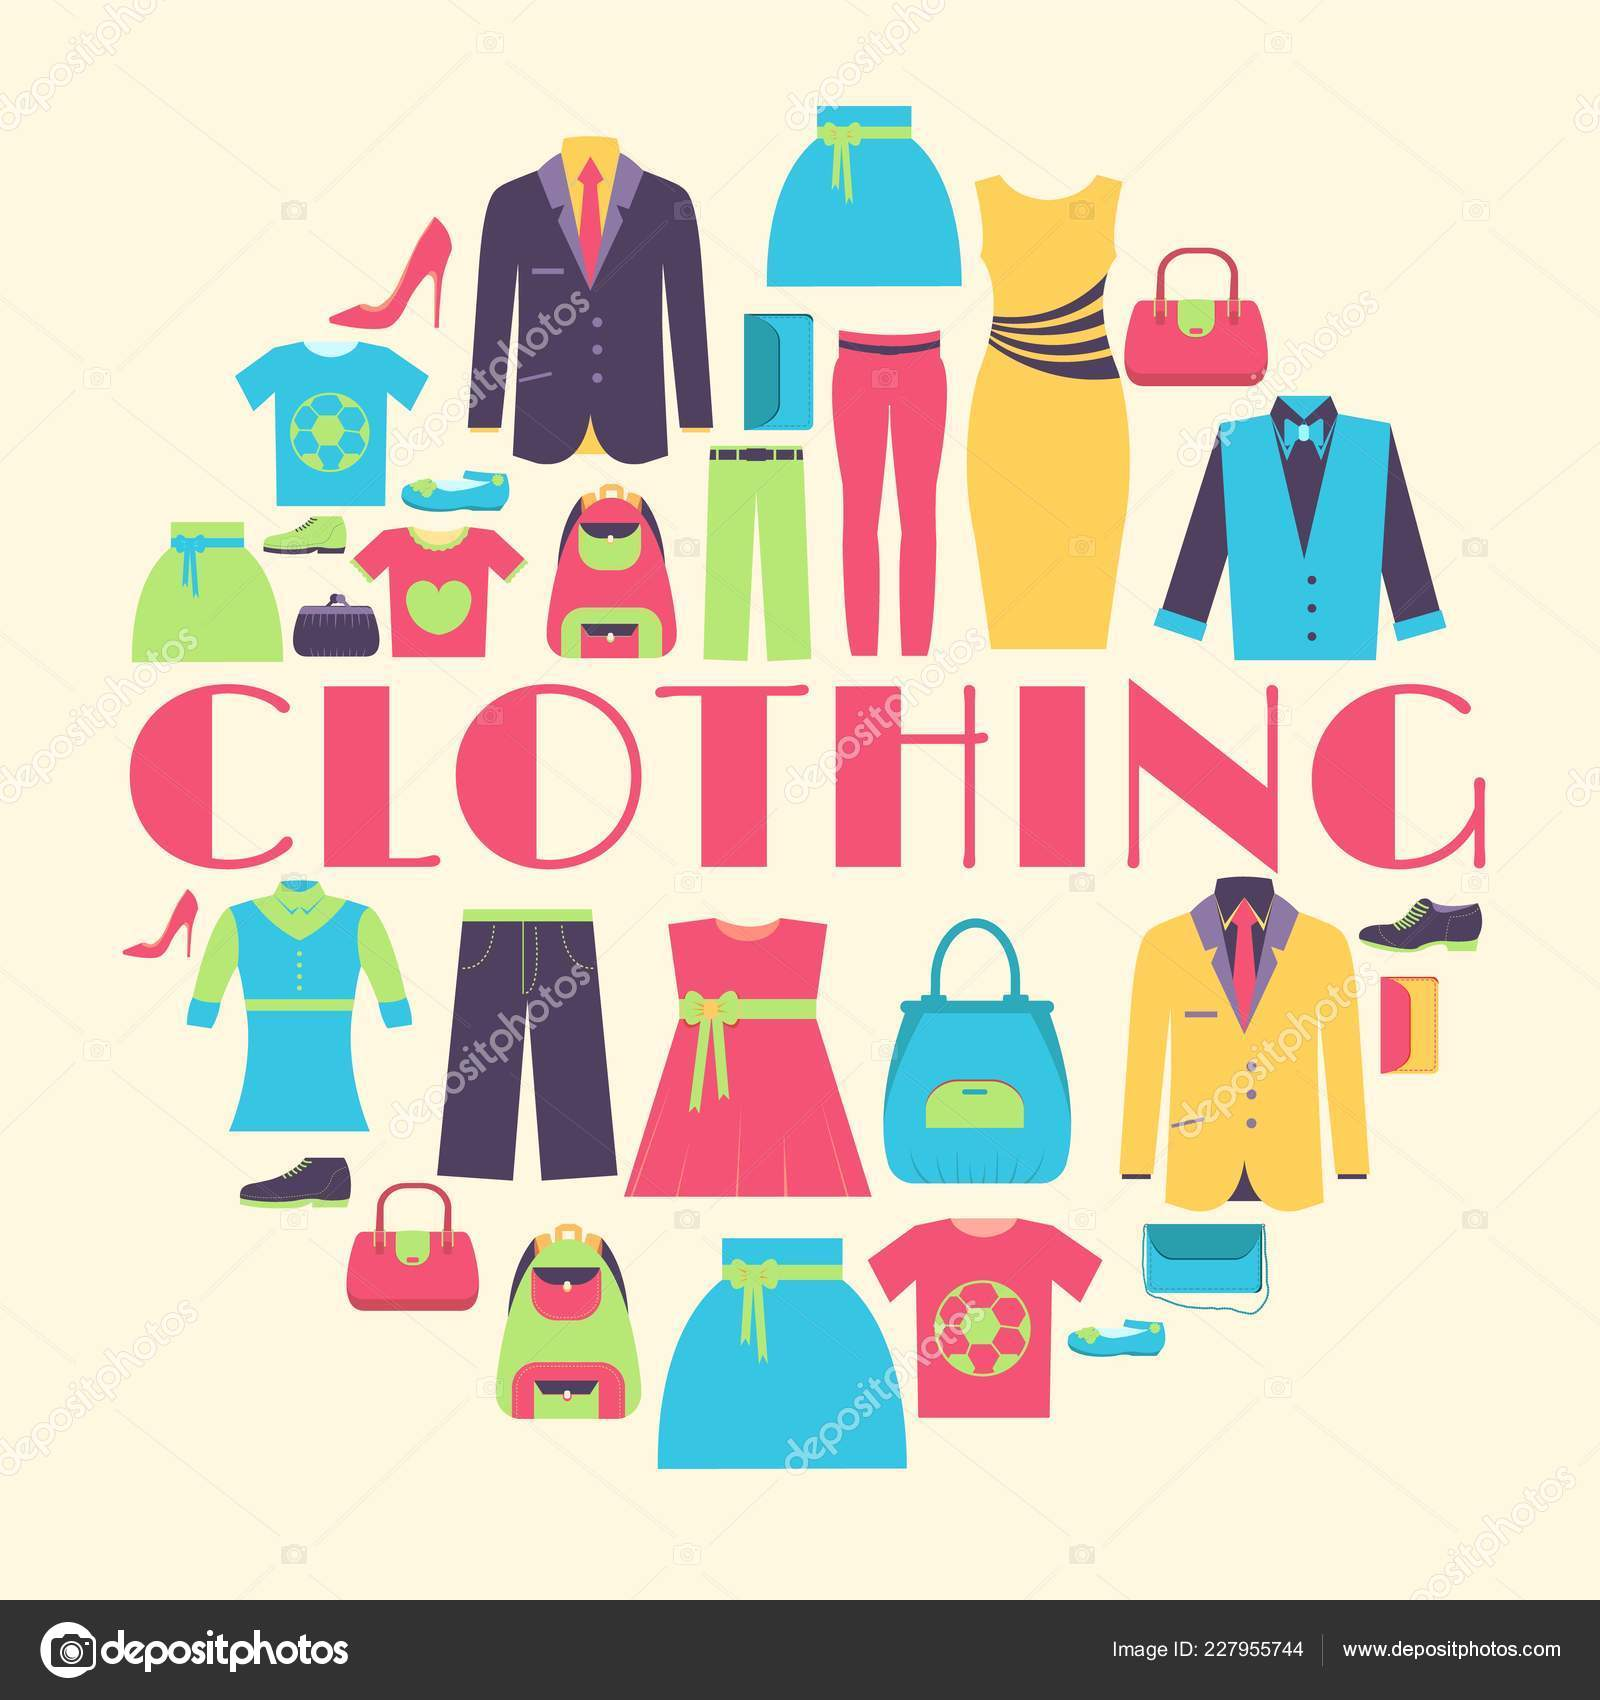 Collection Style Fashion Clothing For People Icon Set Background Concept Vector Template For Web And Mobile Design Stock Vector C Chocostar 227955744